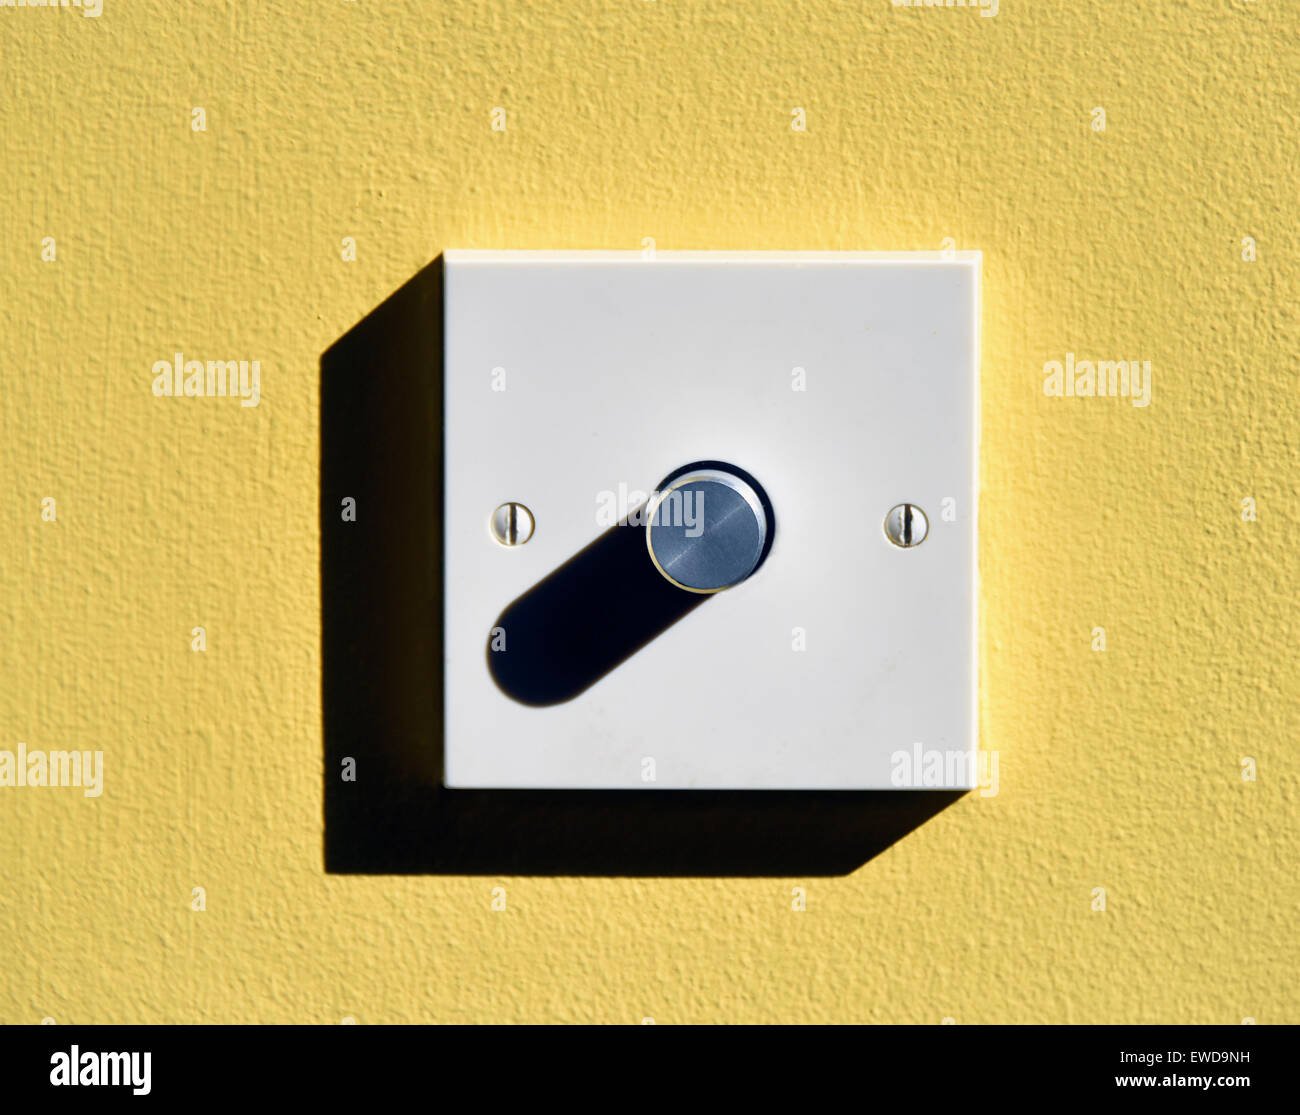 Dimmer Switch Dimmer Light Switch Stockfotos Dimmer Light Switch Bilder Alamy